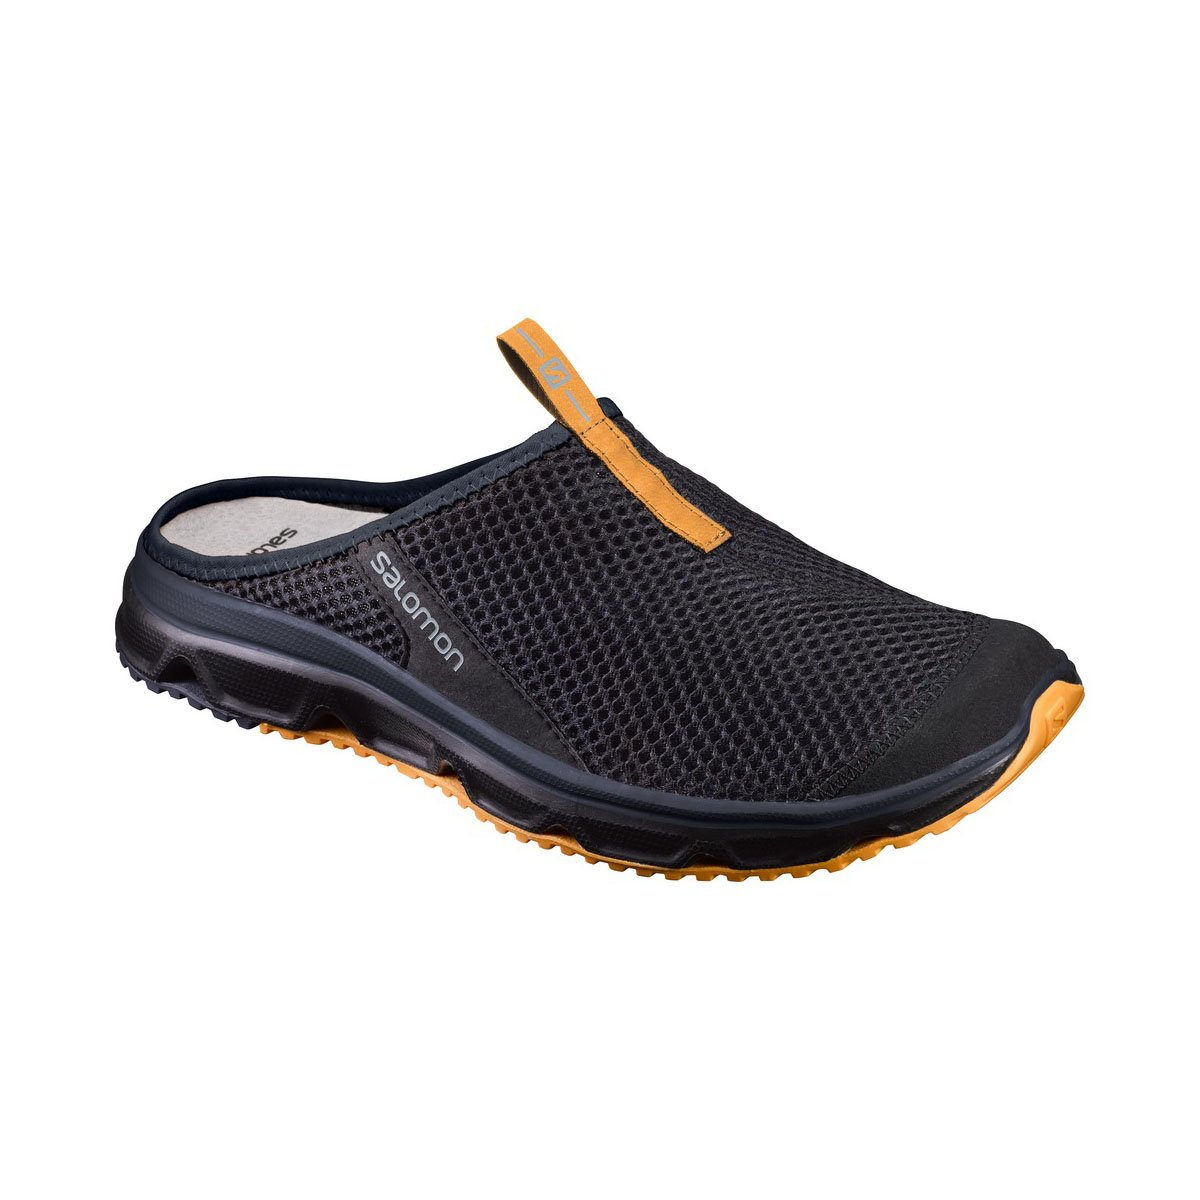 Salomon RX Slide 3.0 392442